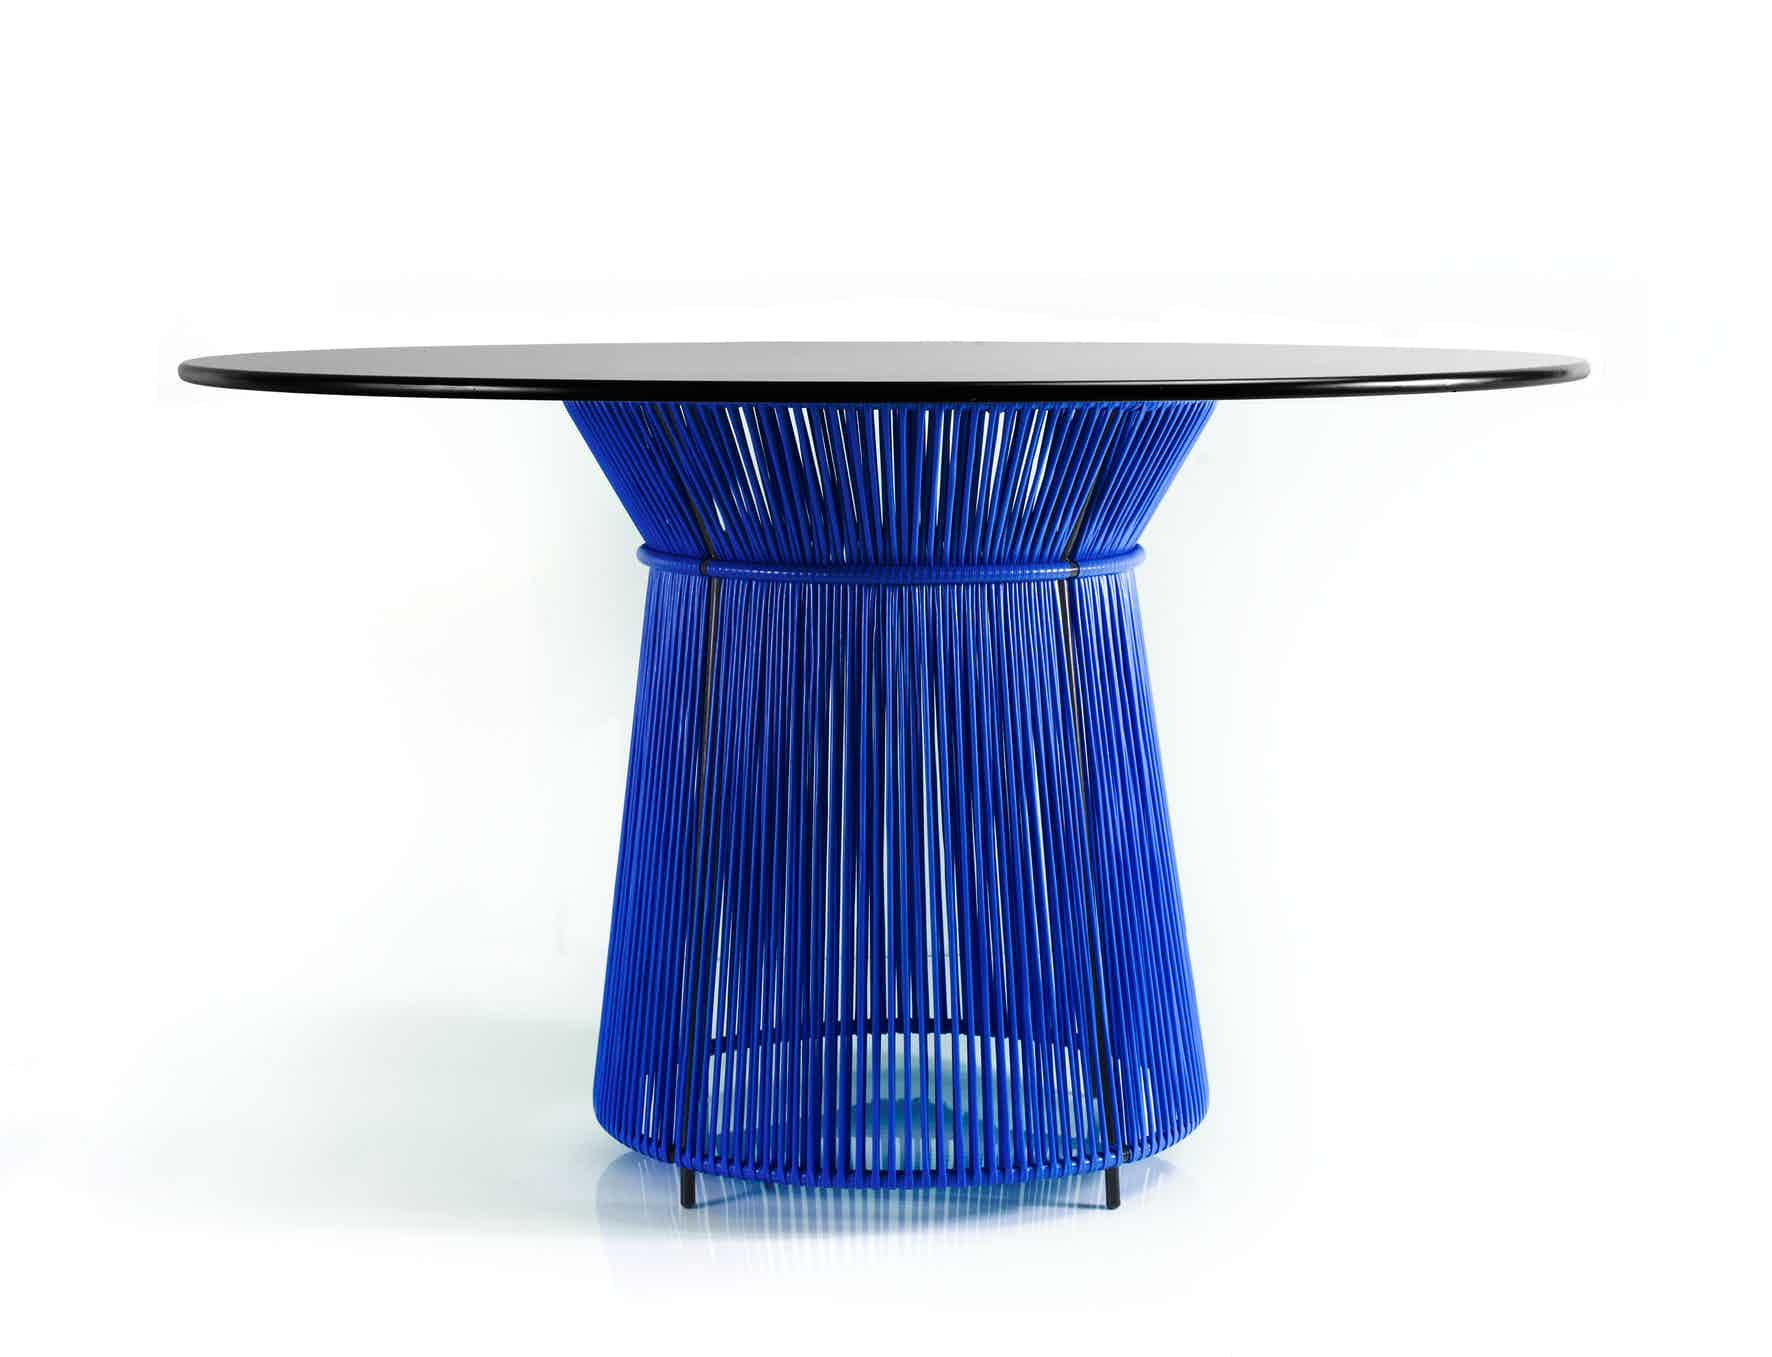 Ames furniture design caribe dining table blue haute living